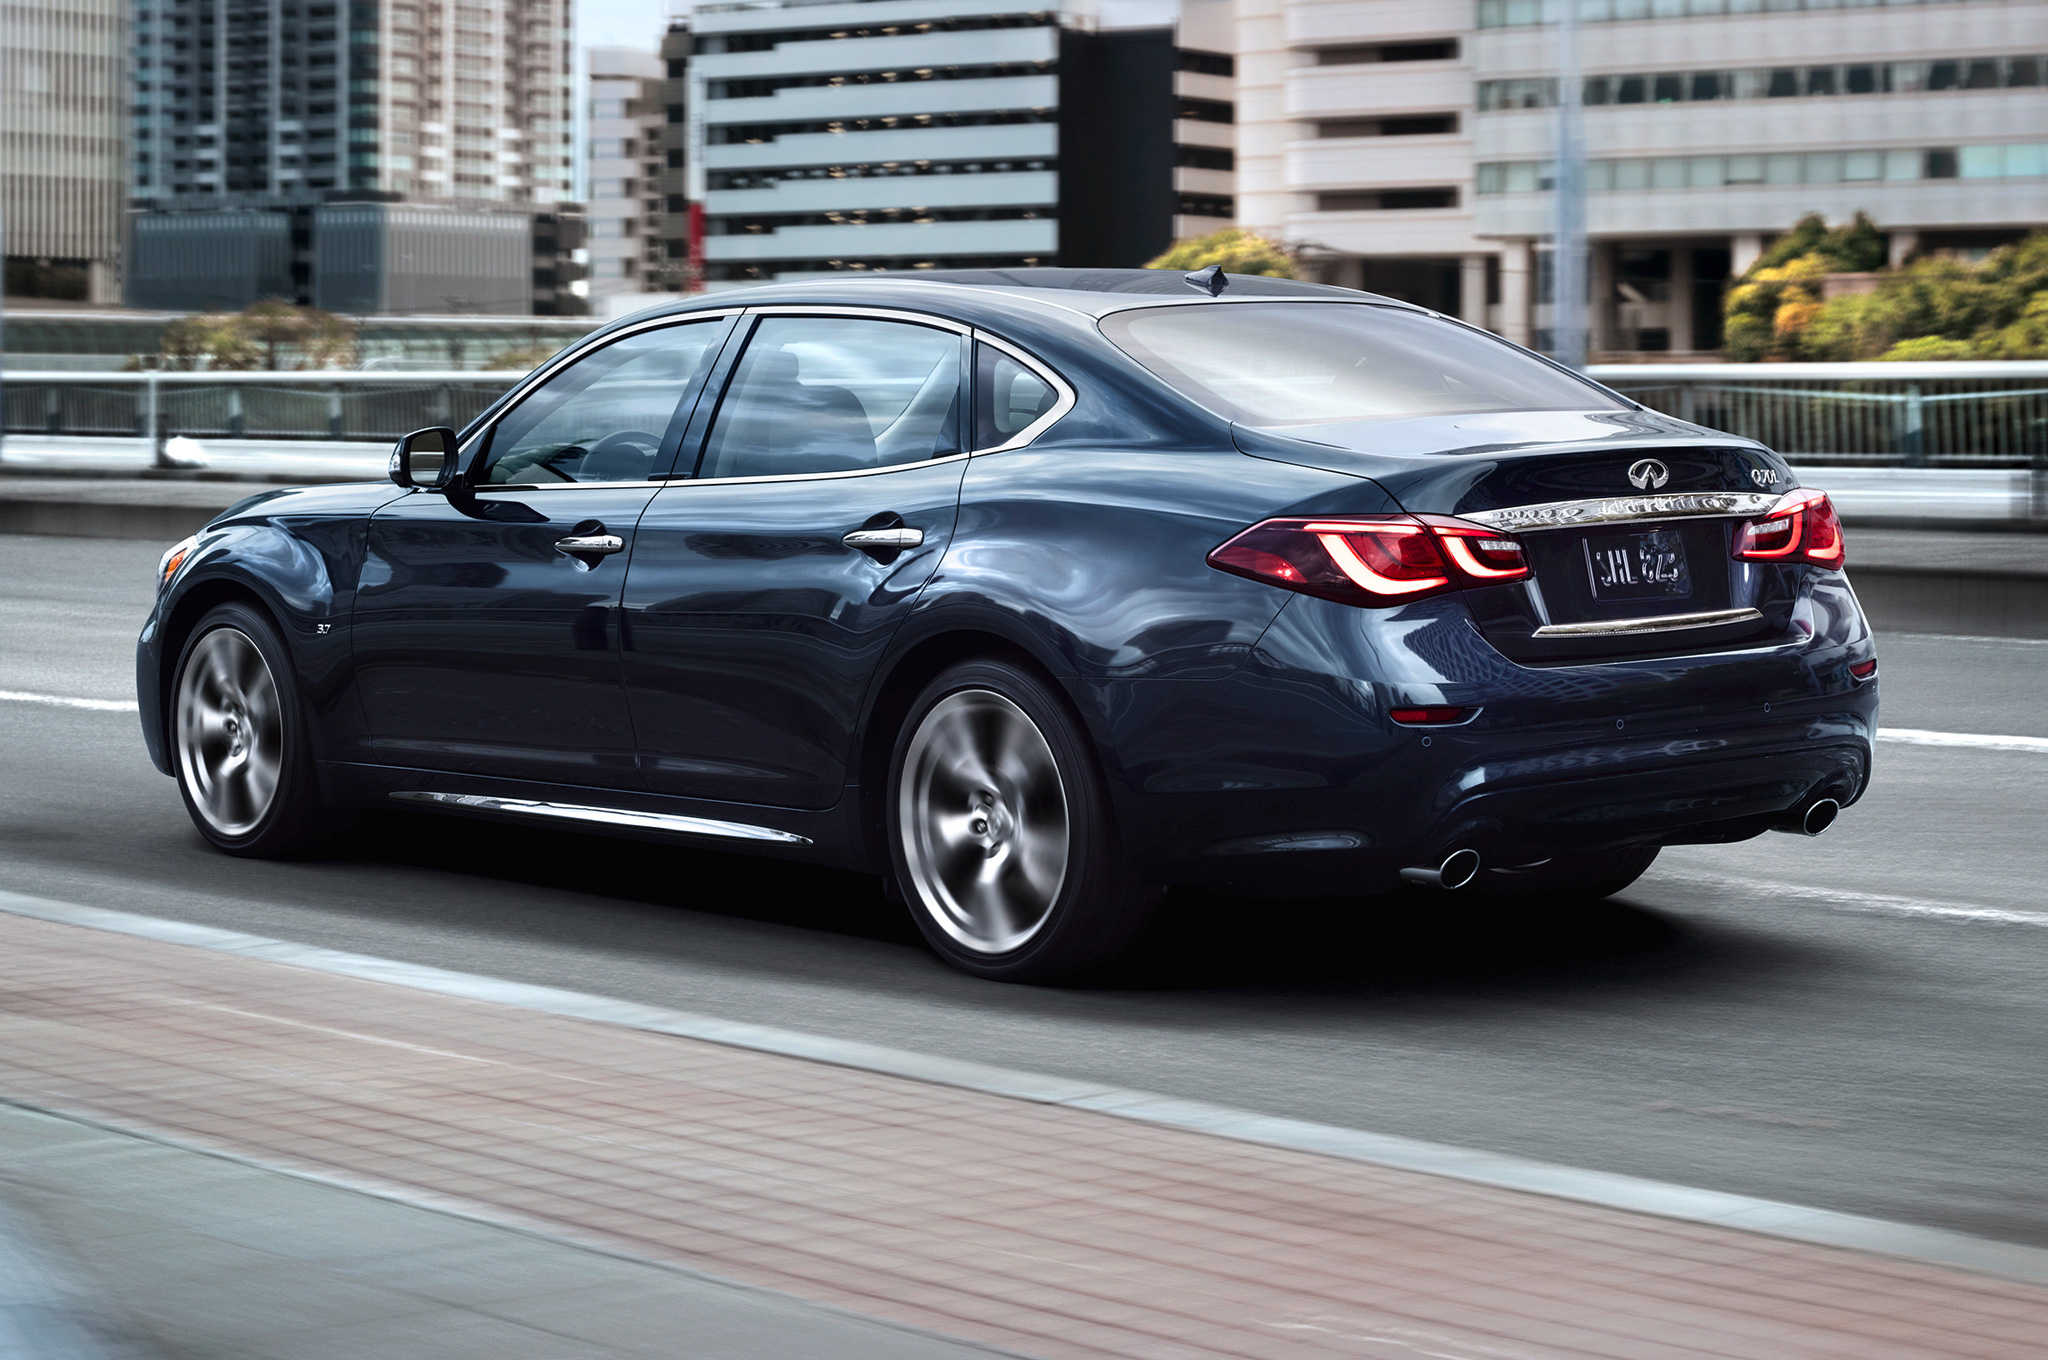 2015 Infiniti Q70l Rear Side Exterior (View 2 of 10)